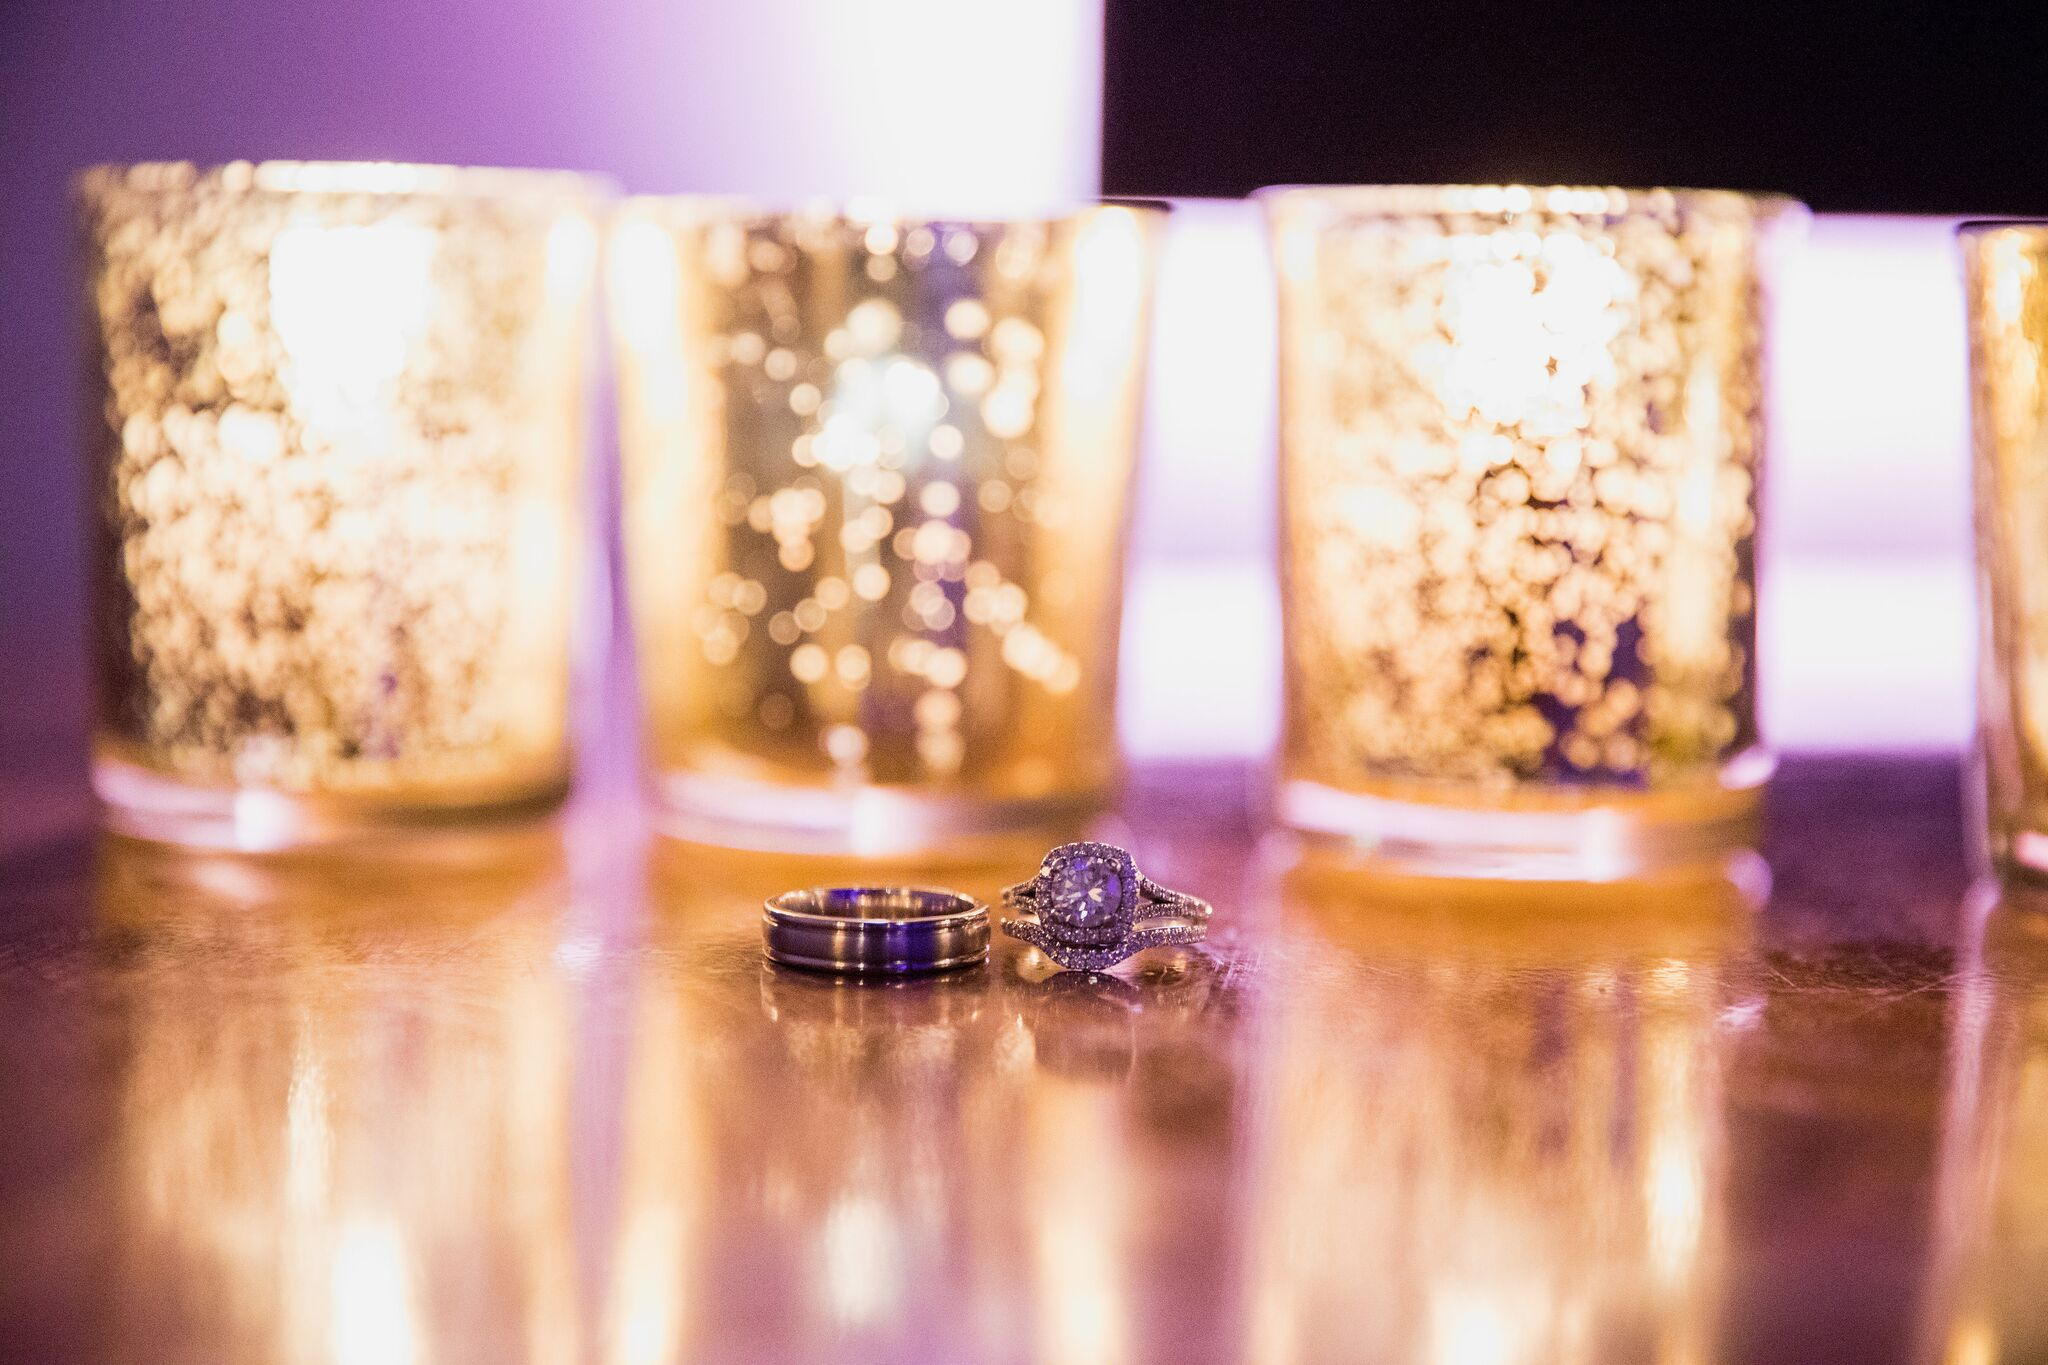 Christina and Clint's wedding rings